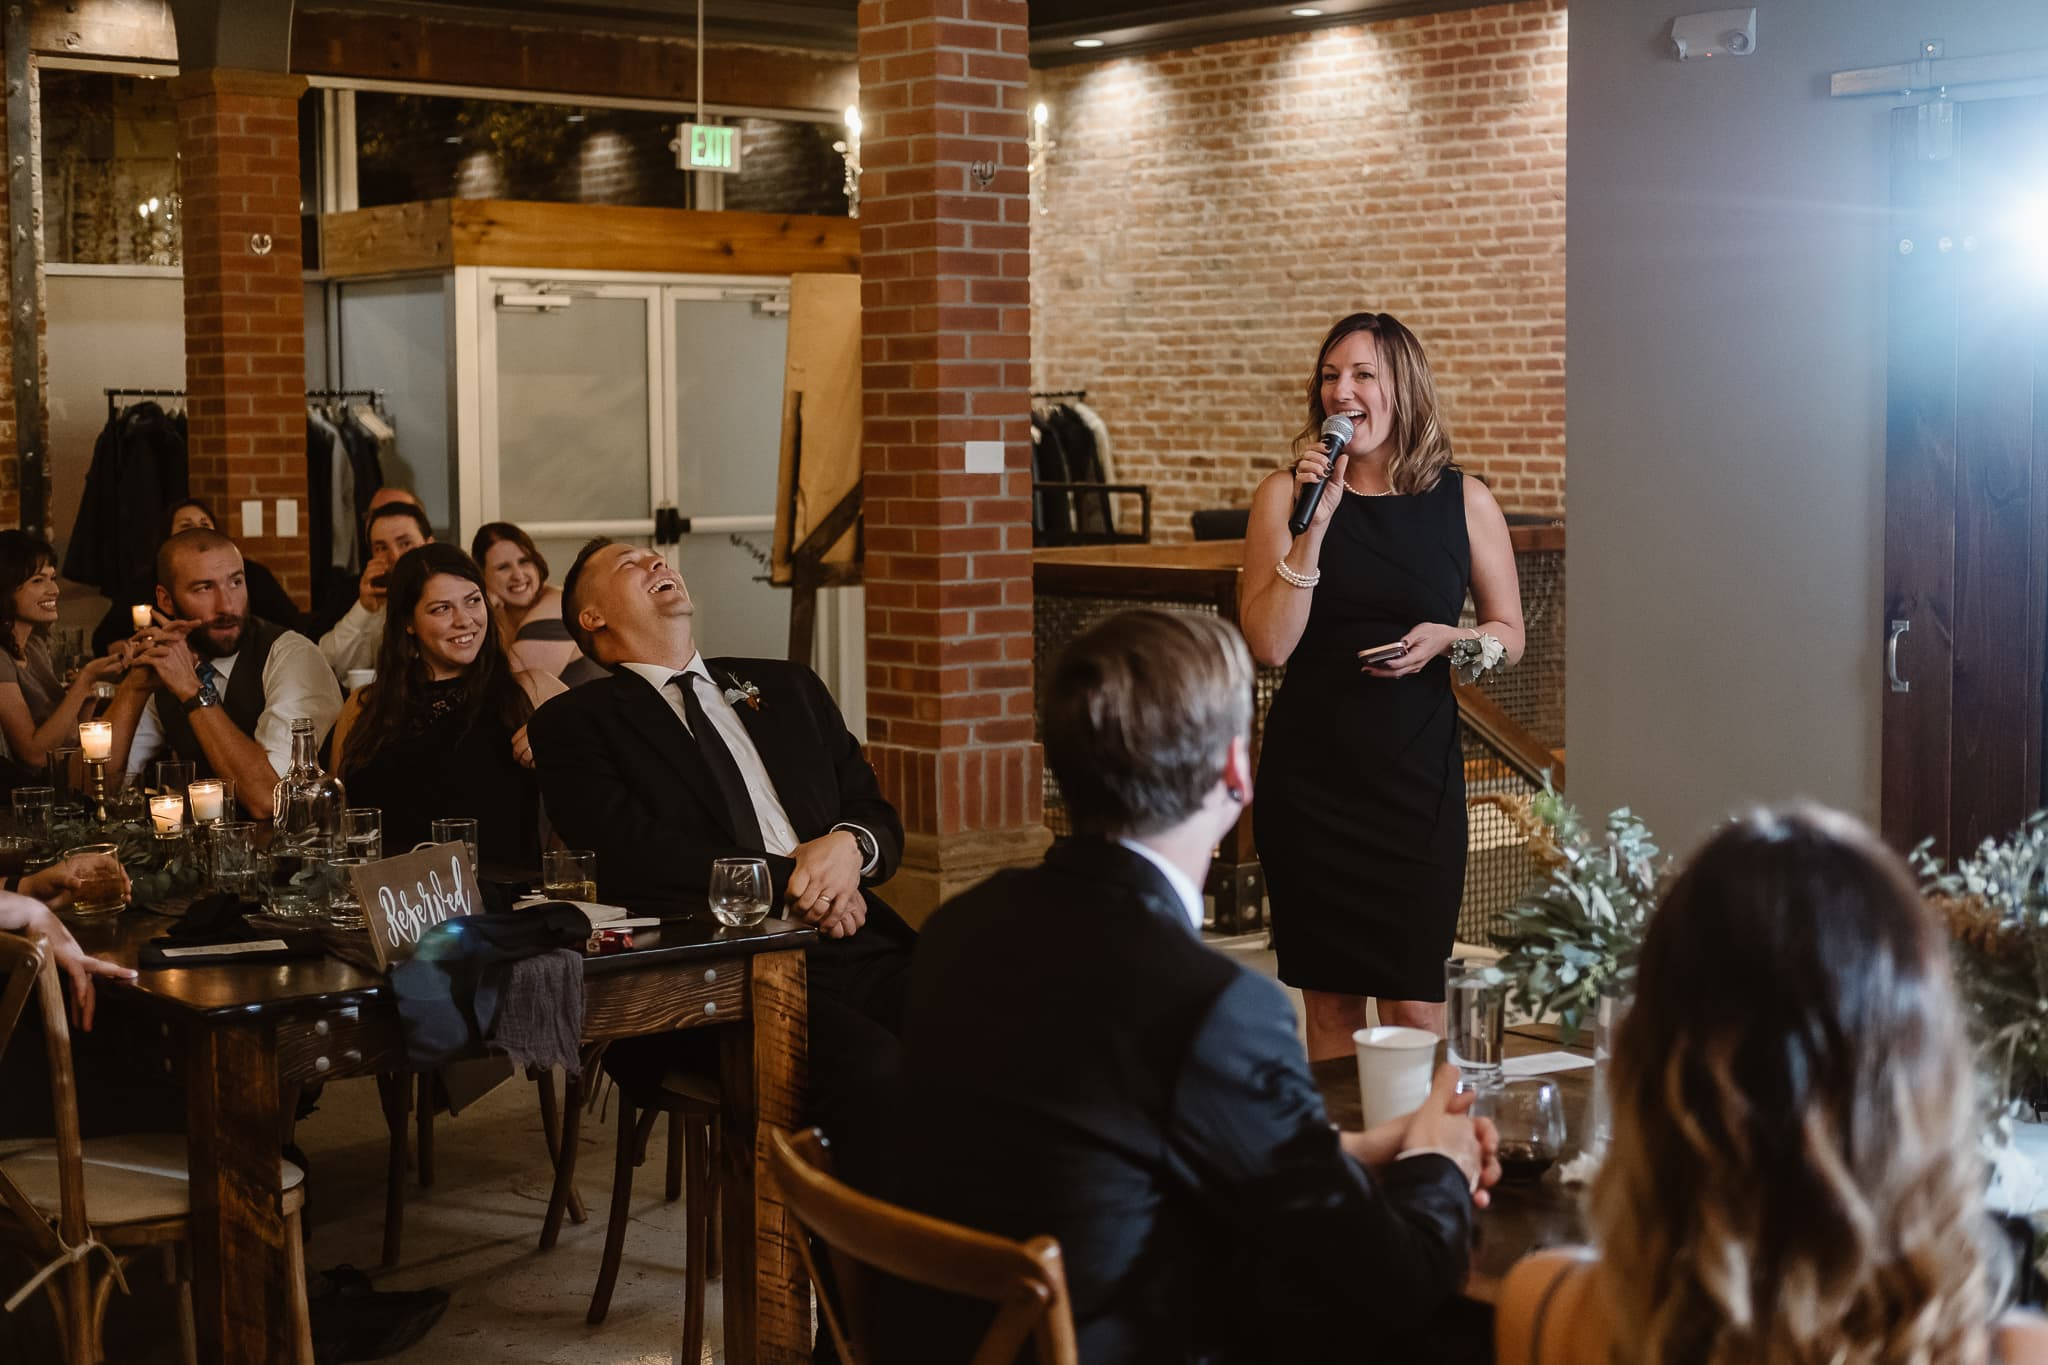 St Vrain Wedding Photographer | Longmont Wedding Photographer | Colorado Winter Wedding Photographer, Colorado industrial chic wedding ceremony, wedding toasts